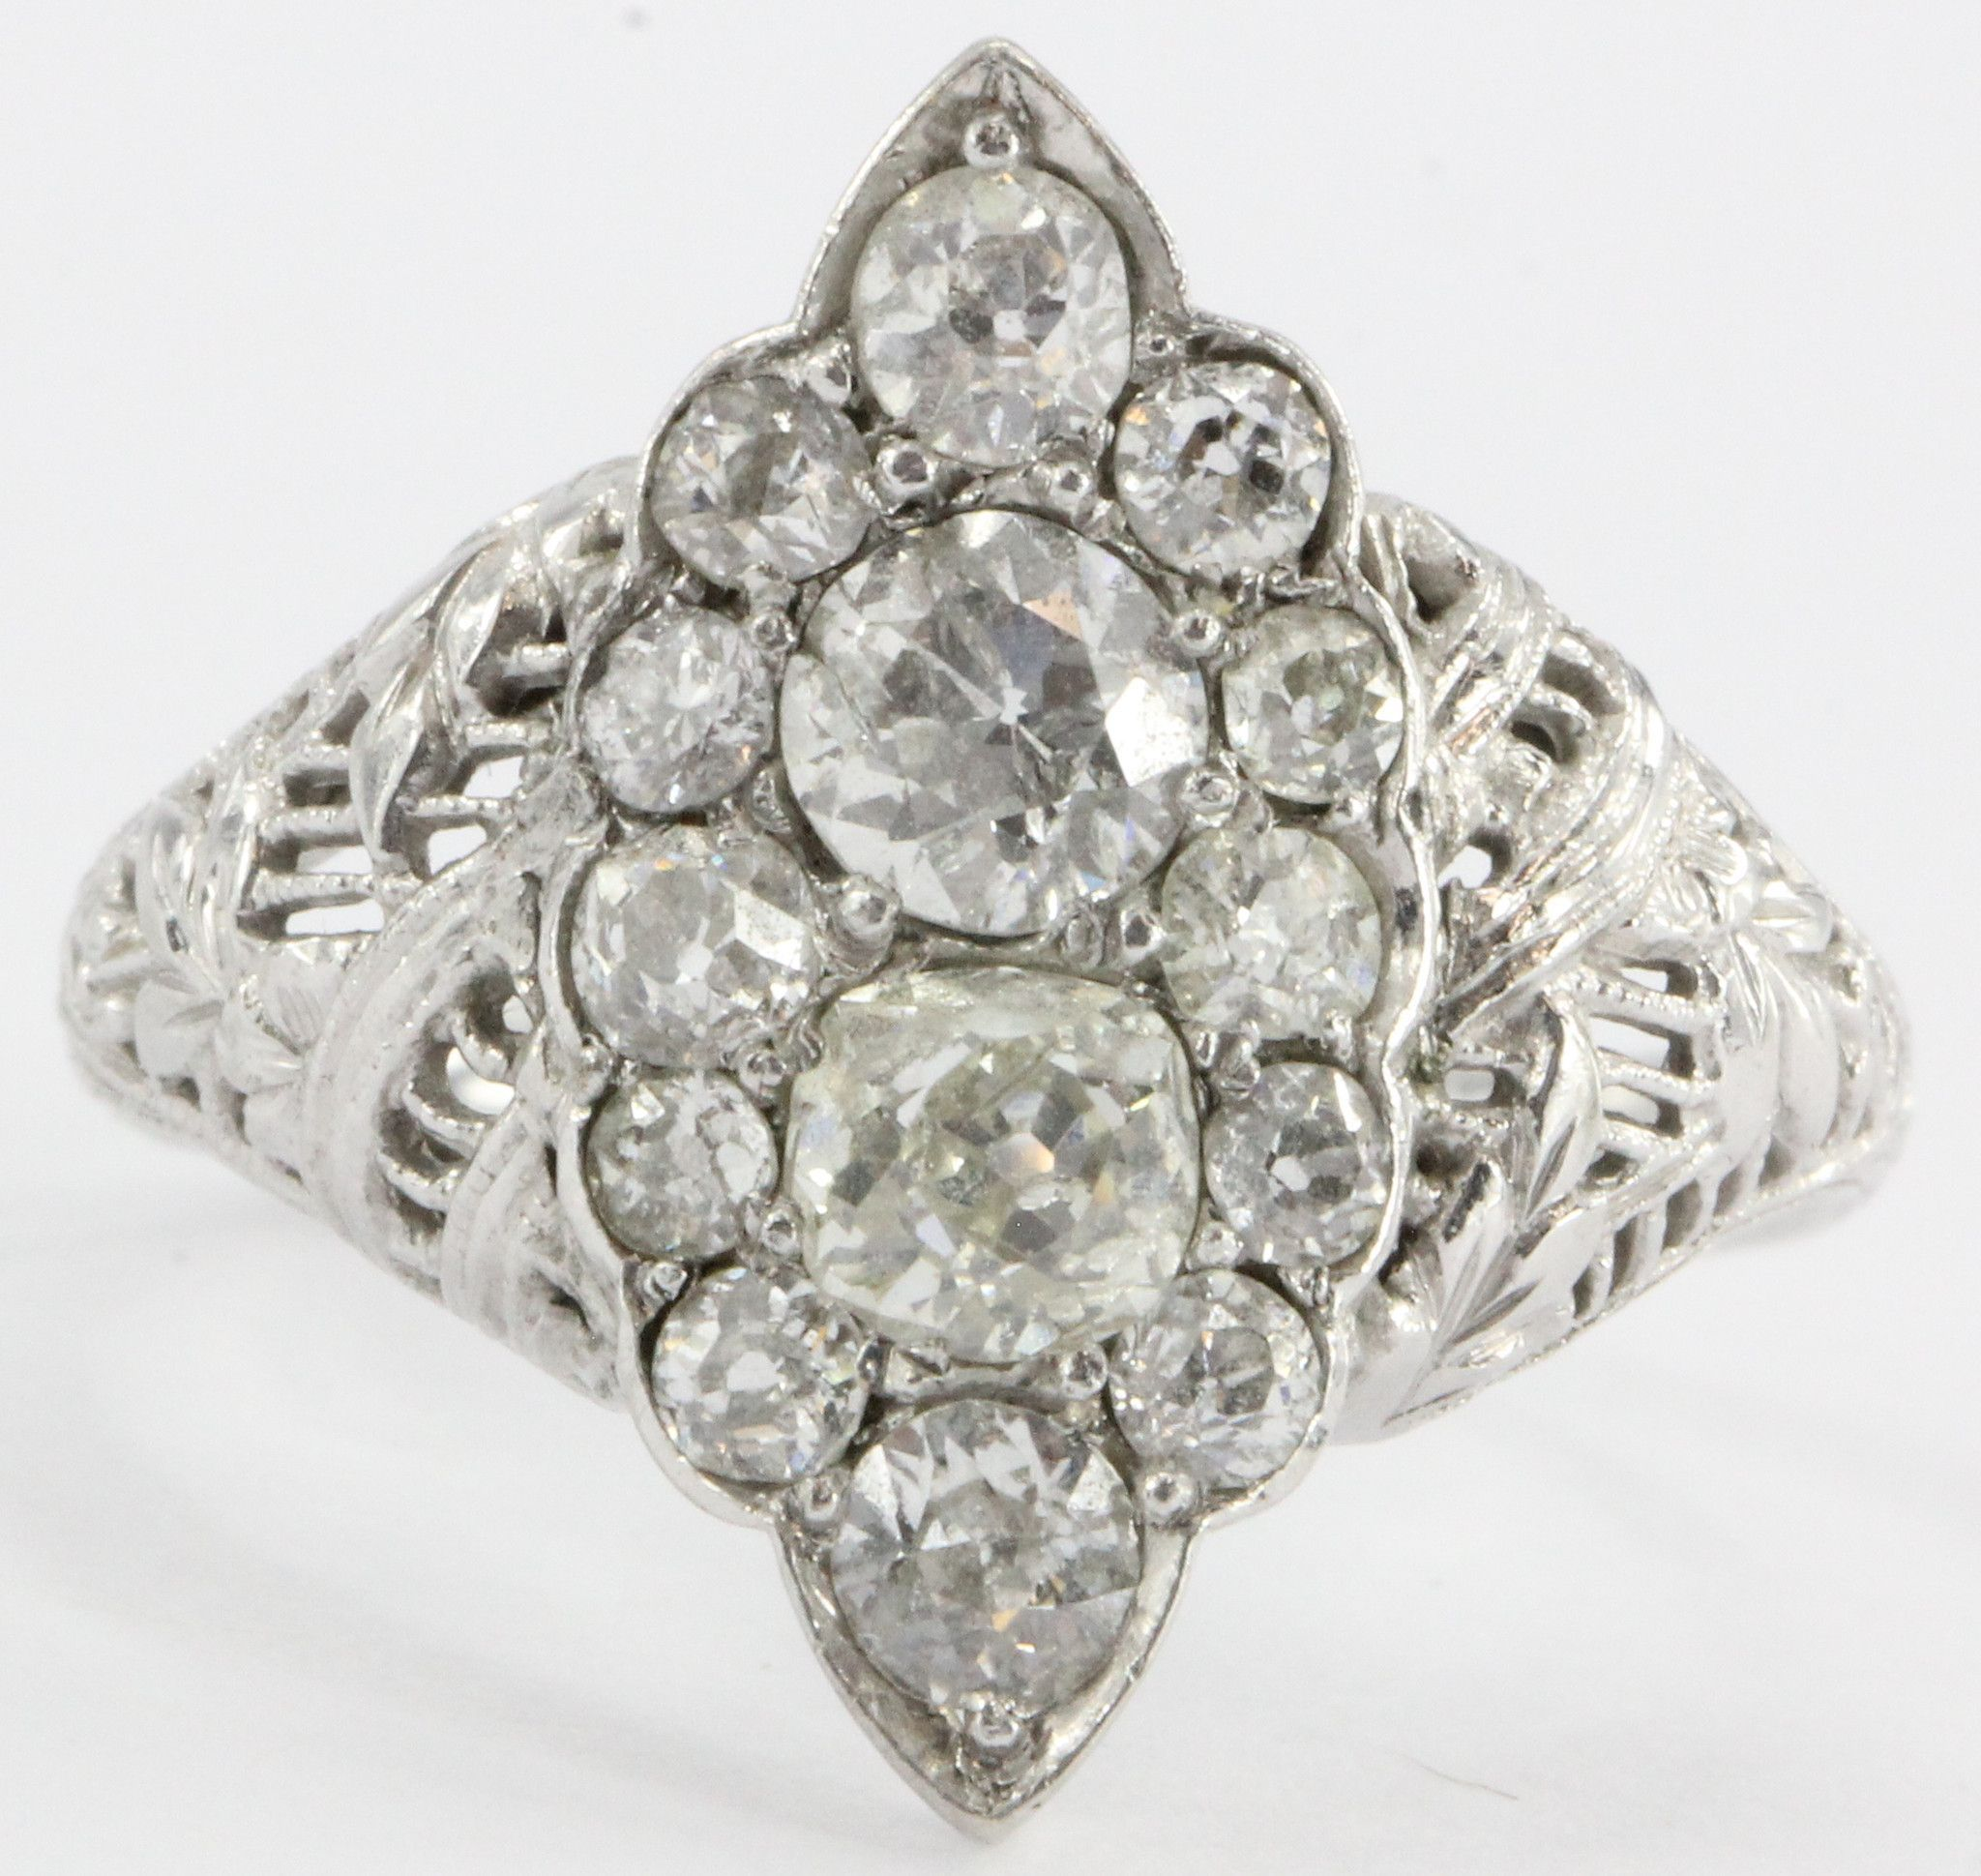 rings antique engagement orange diamond county to surrounding areas the place in bands best buy